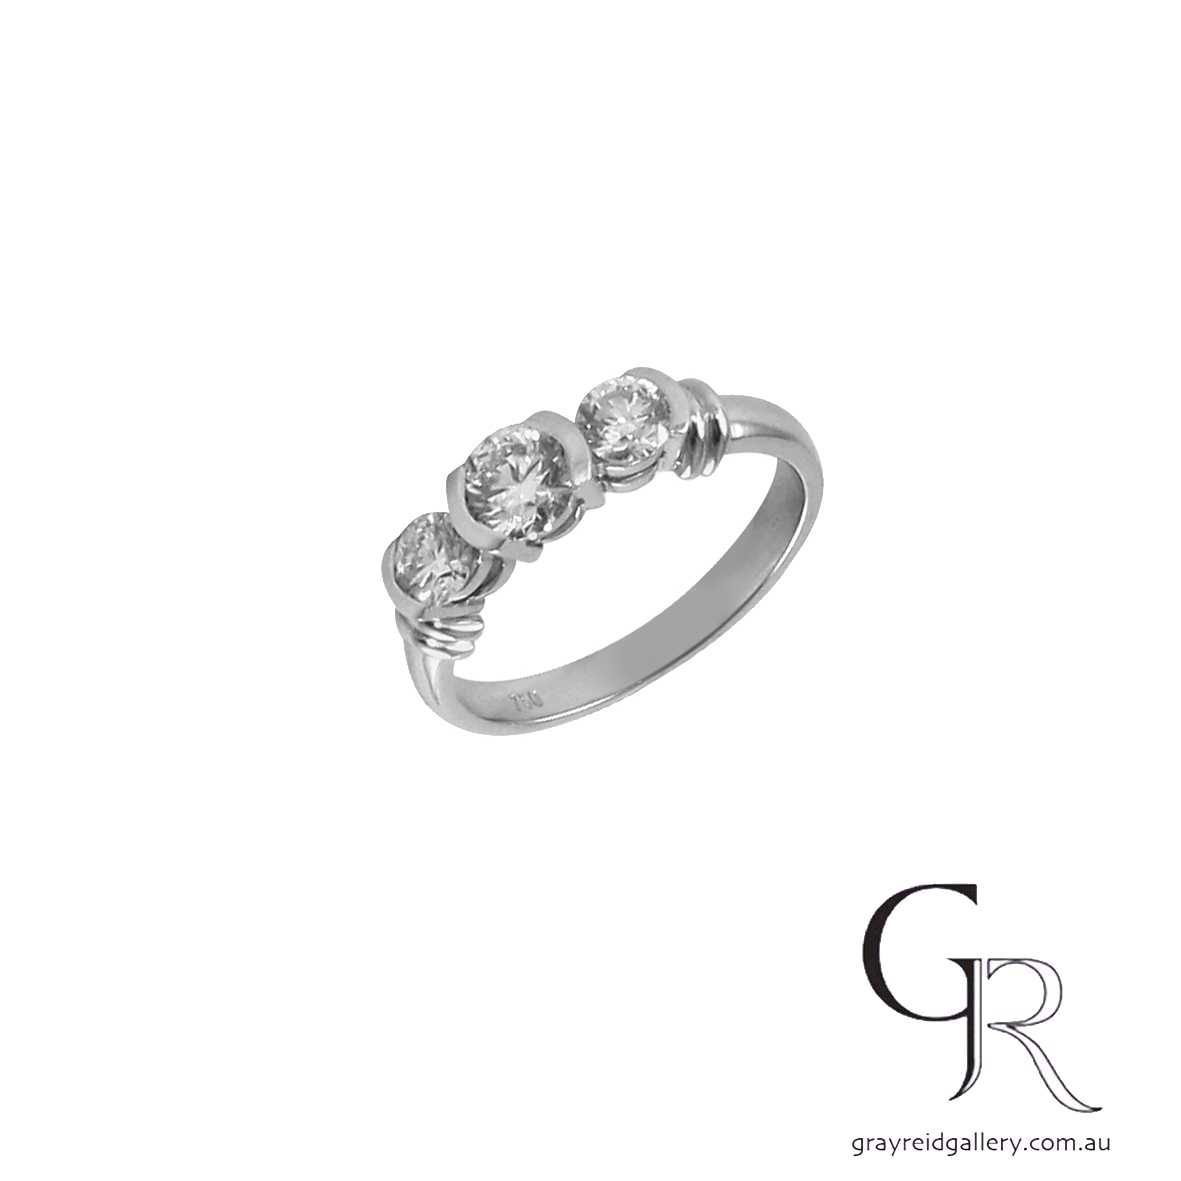 Engagement Ring Melbourne semi bezel white gold  Gray Reid Gallery.jpg